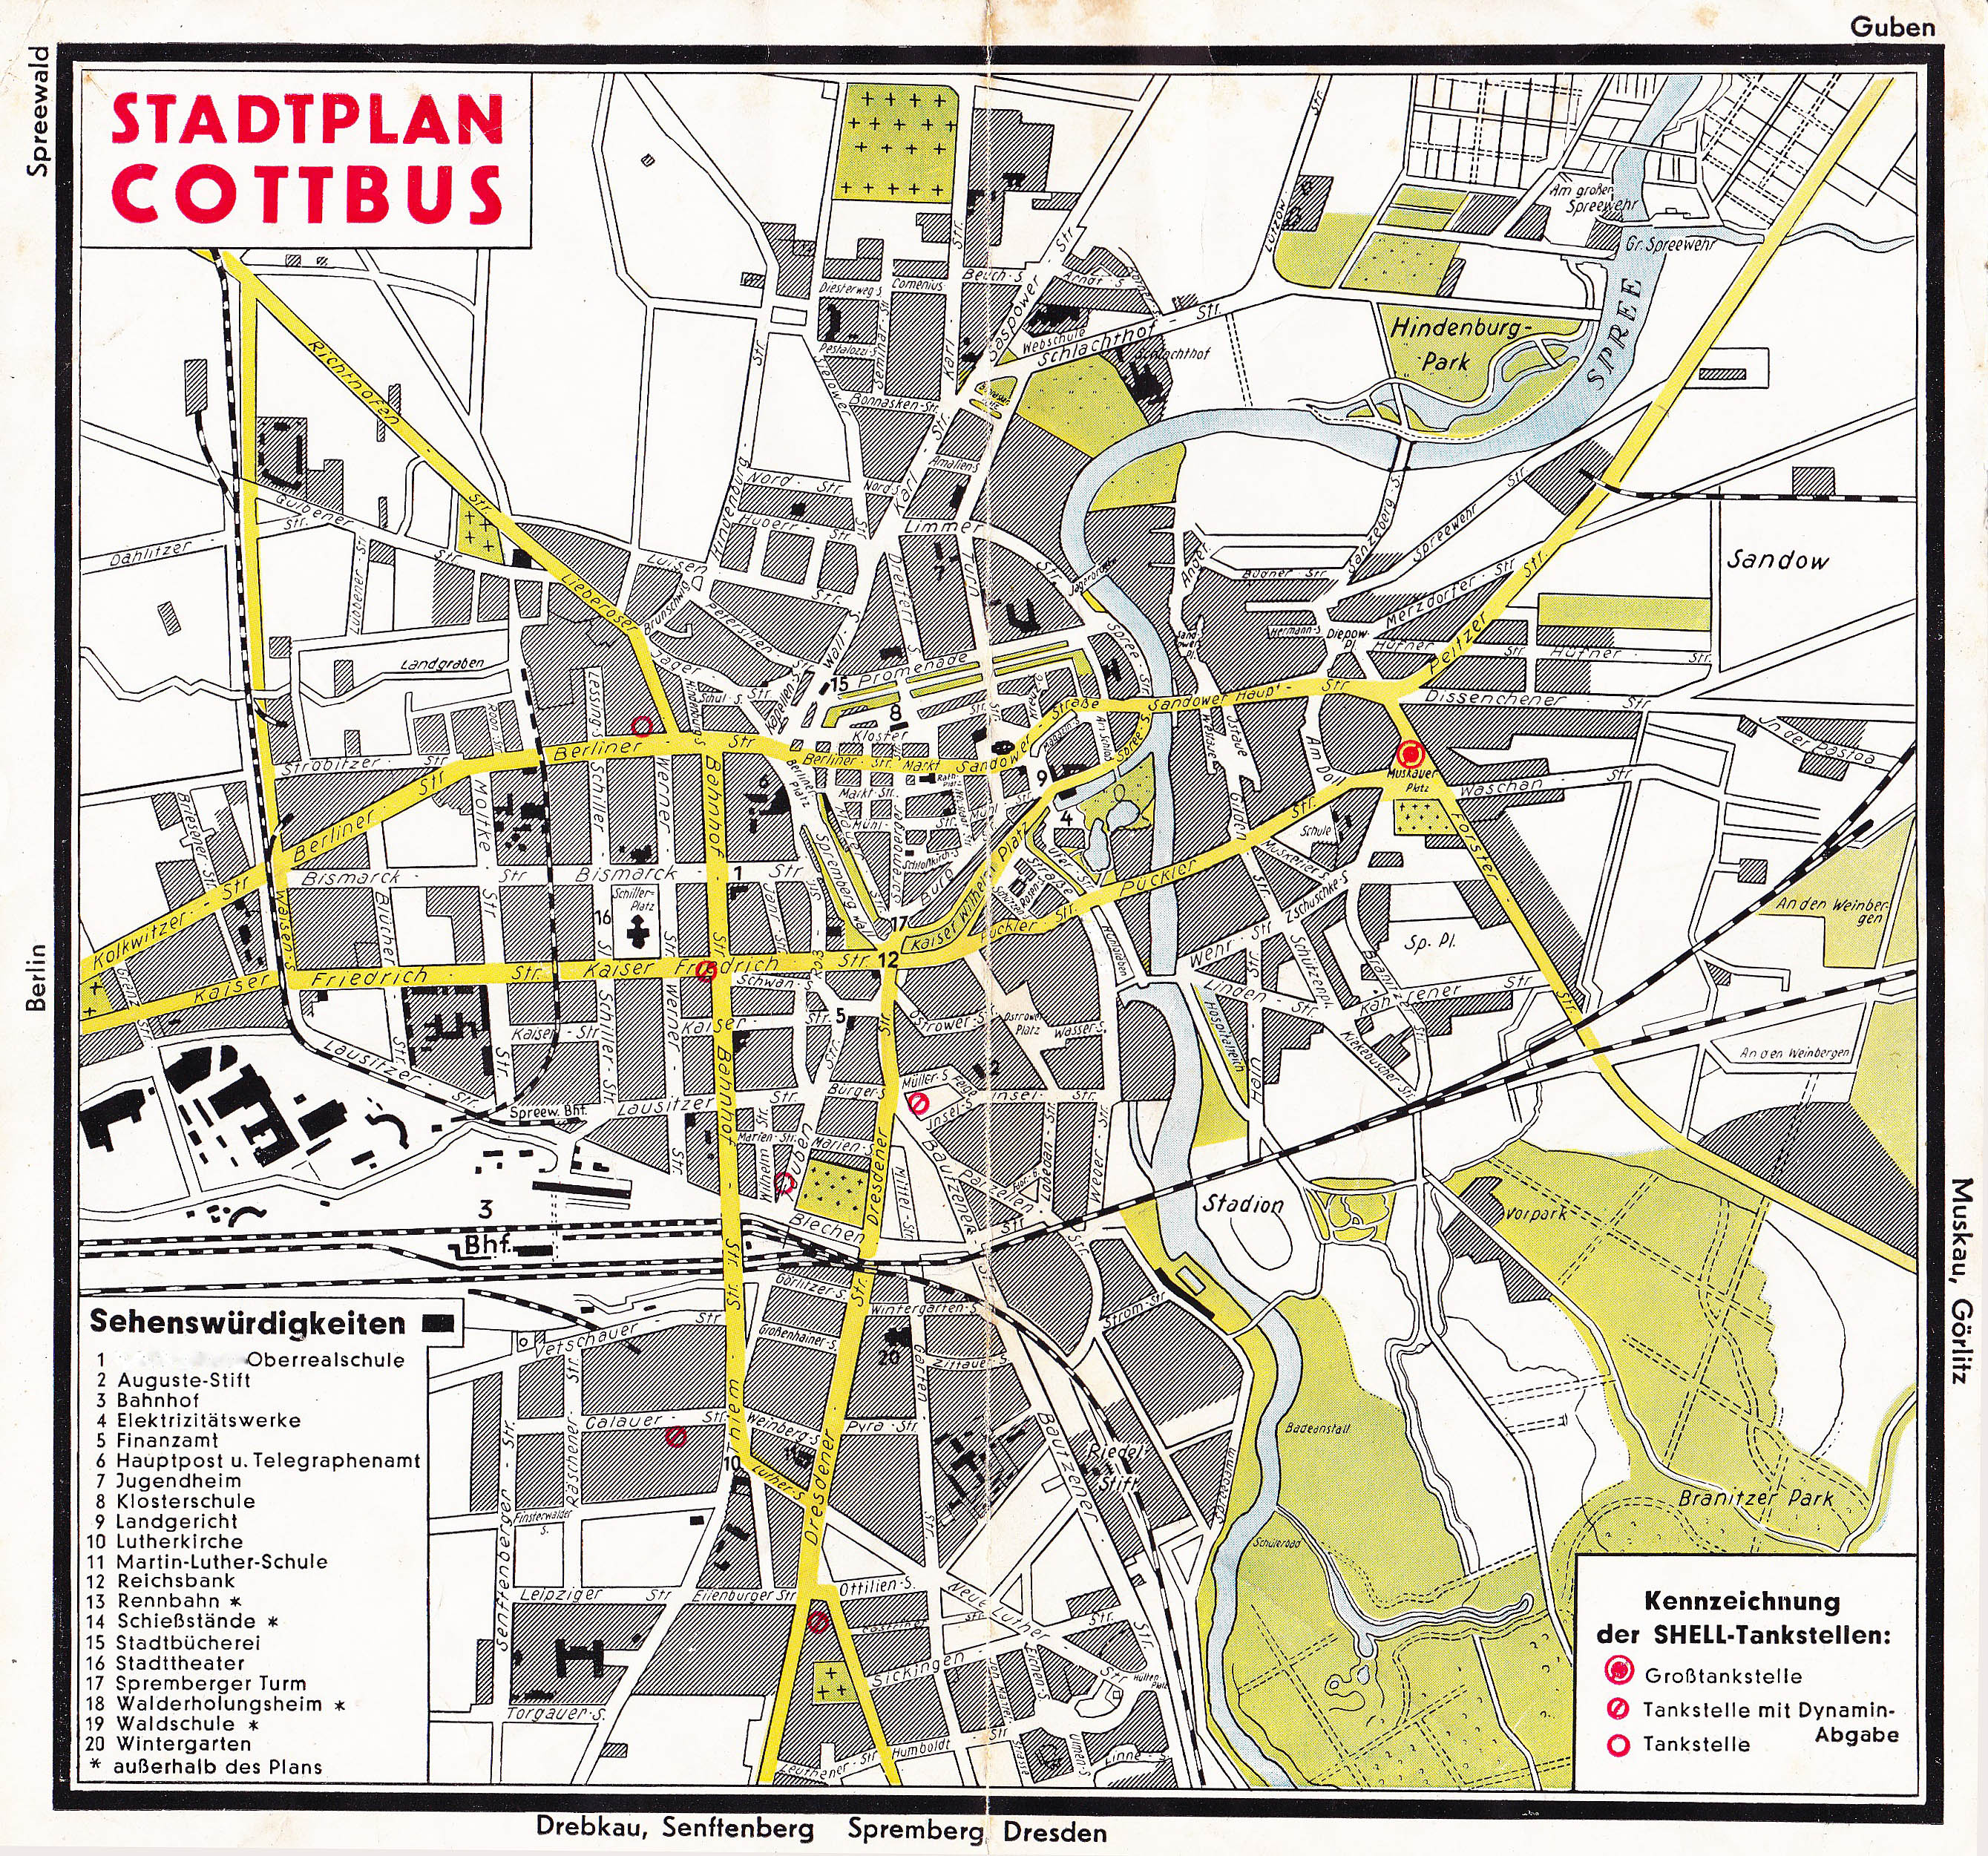 File:Stadtplan-Cottbus-1934.jpg - Wikimedia Commons